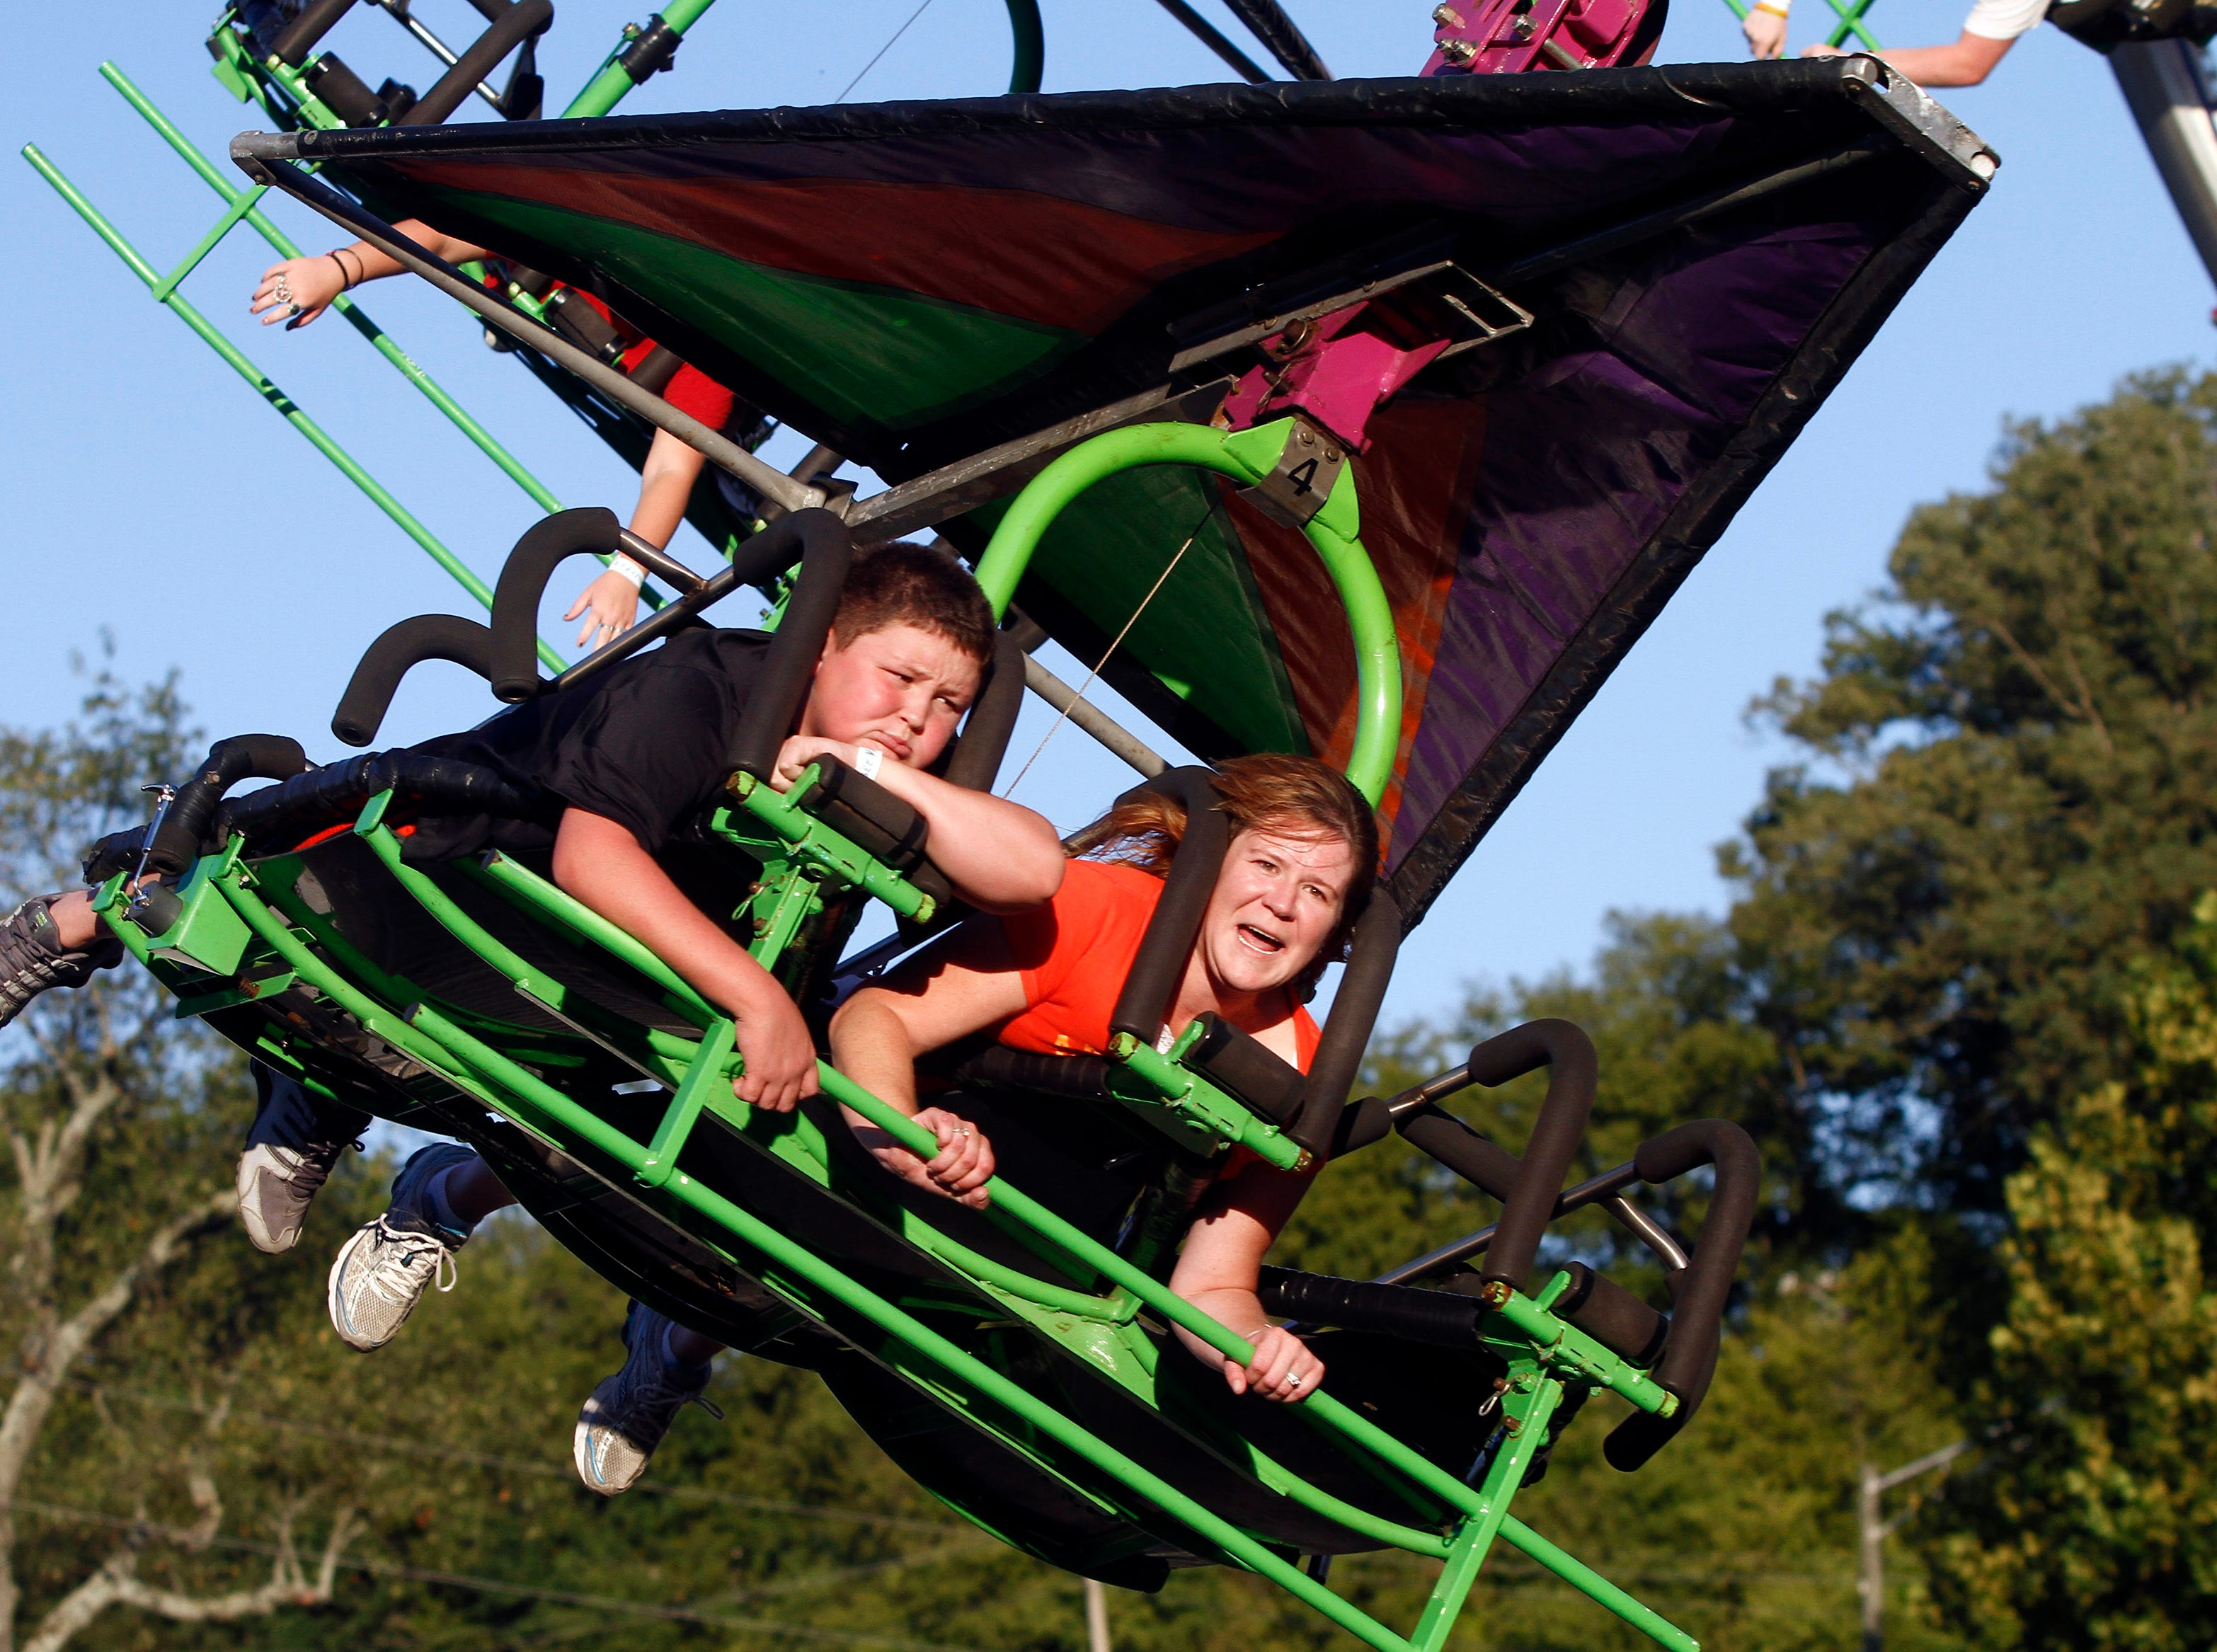 Two young people ride a ride that simulates a hang-glider during the first night of the annual Tennessee Valley Fair Friday, Sept. 7, 2012 in Knoxville, Tenn.